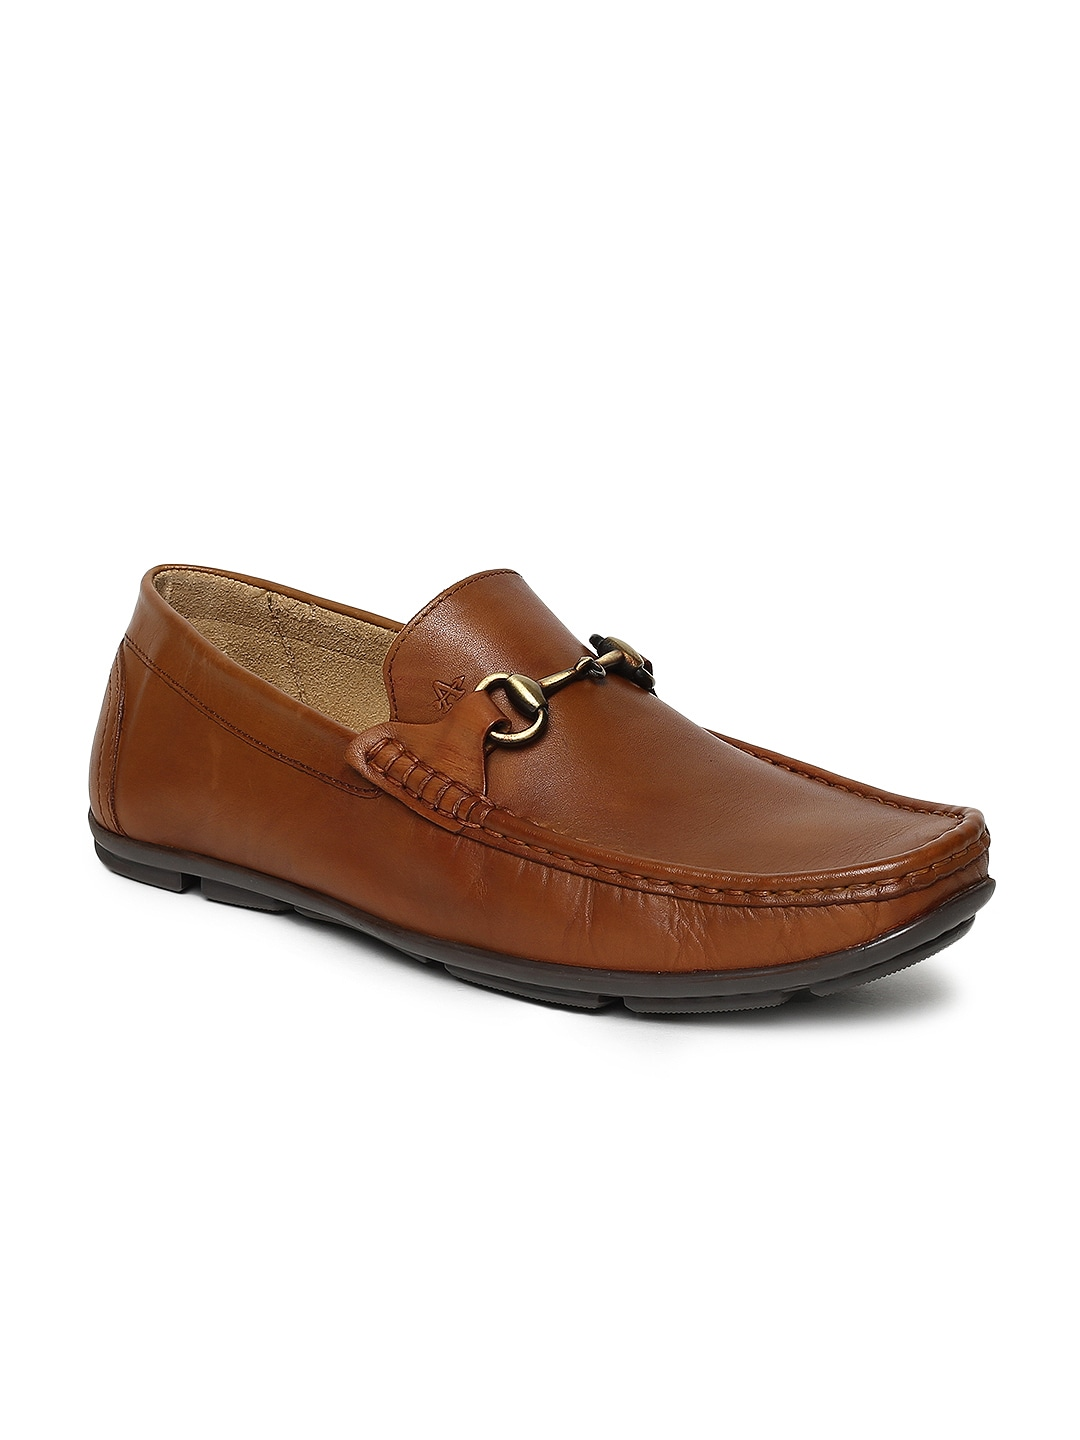 Tan Solid Leather Loafers